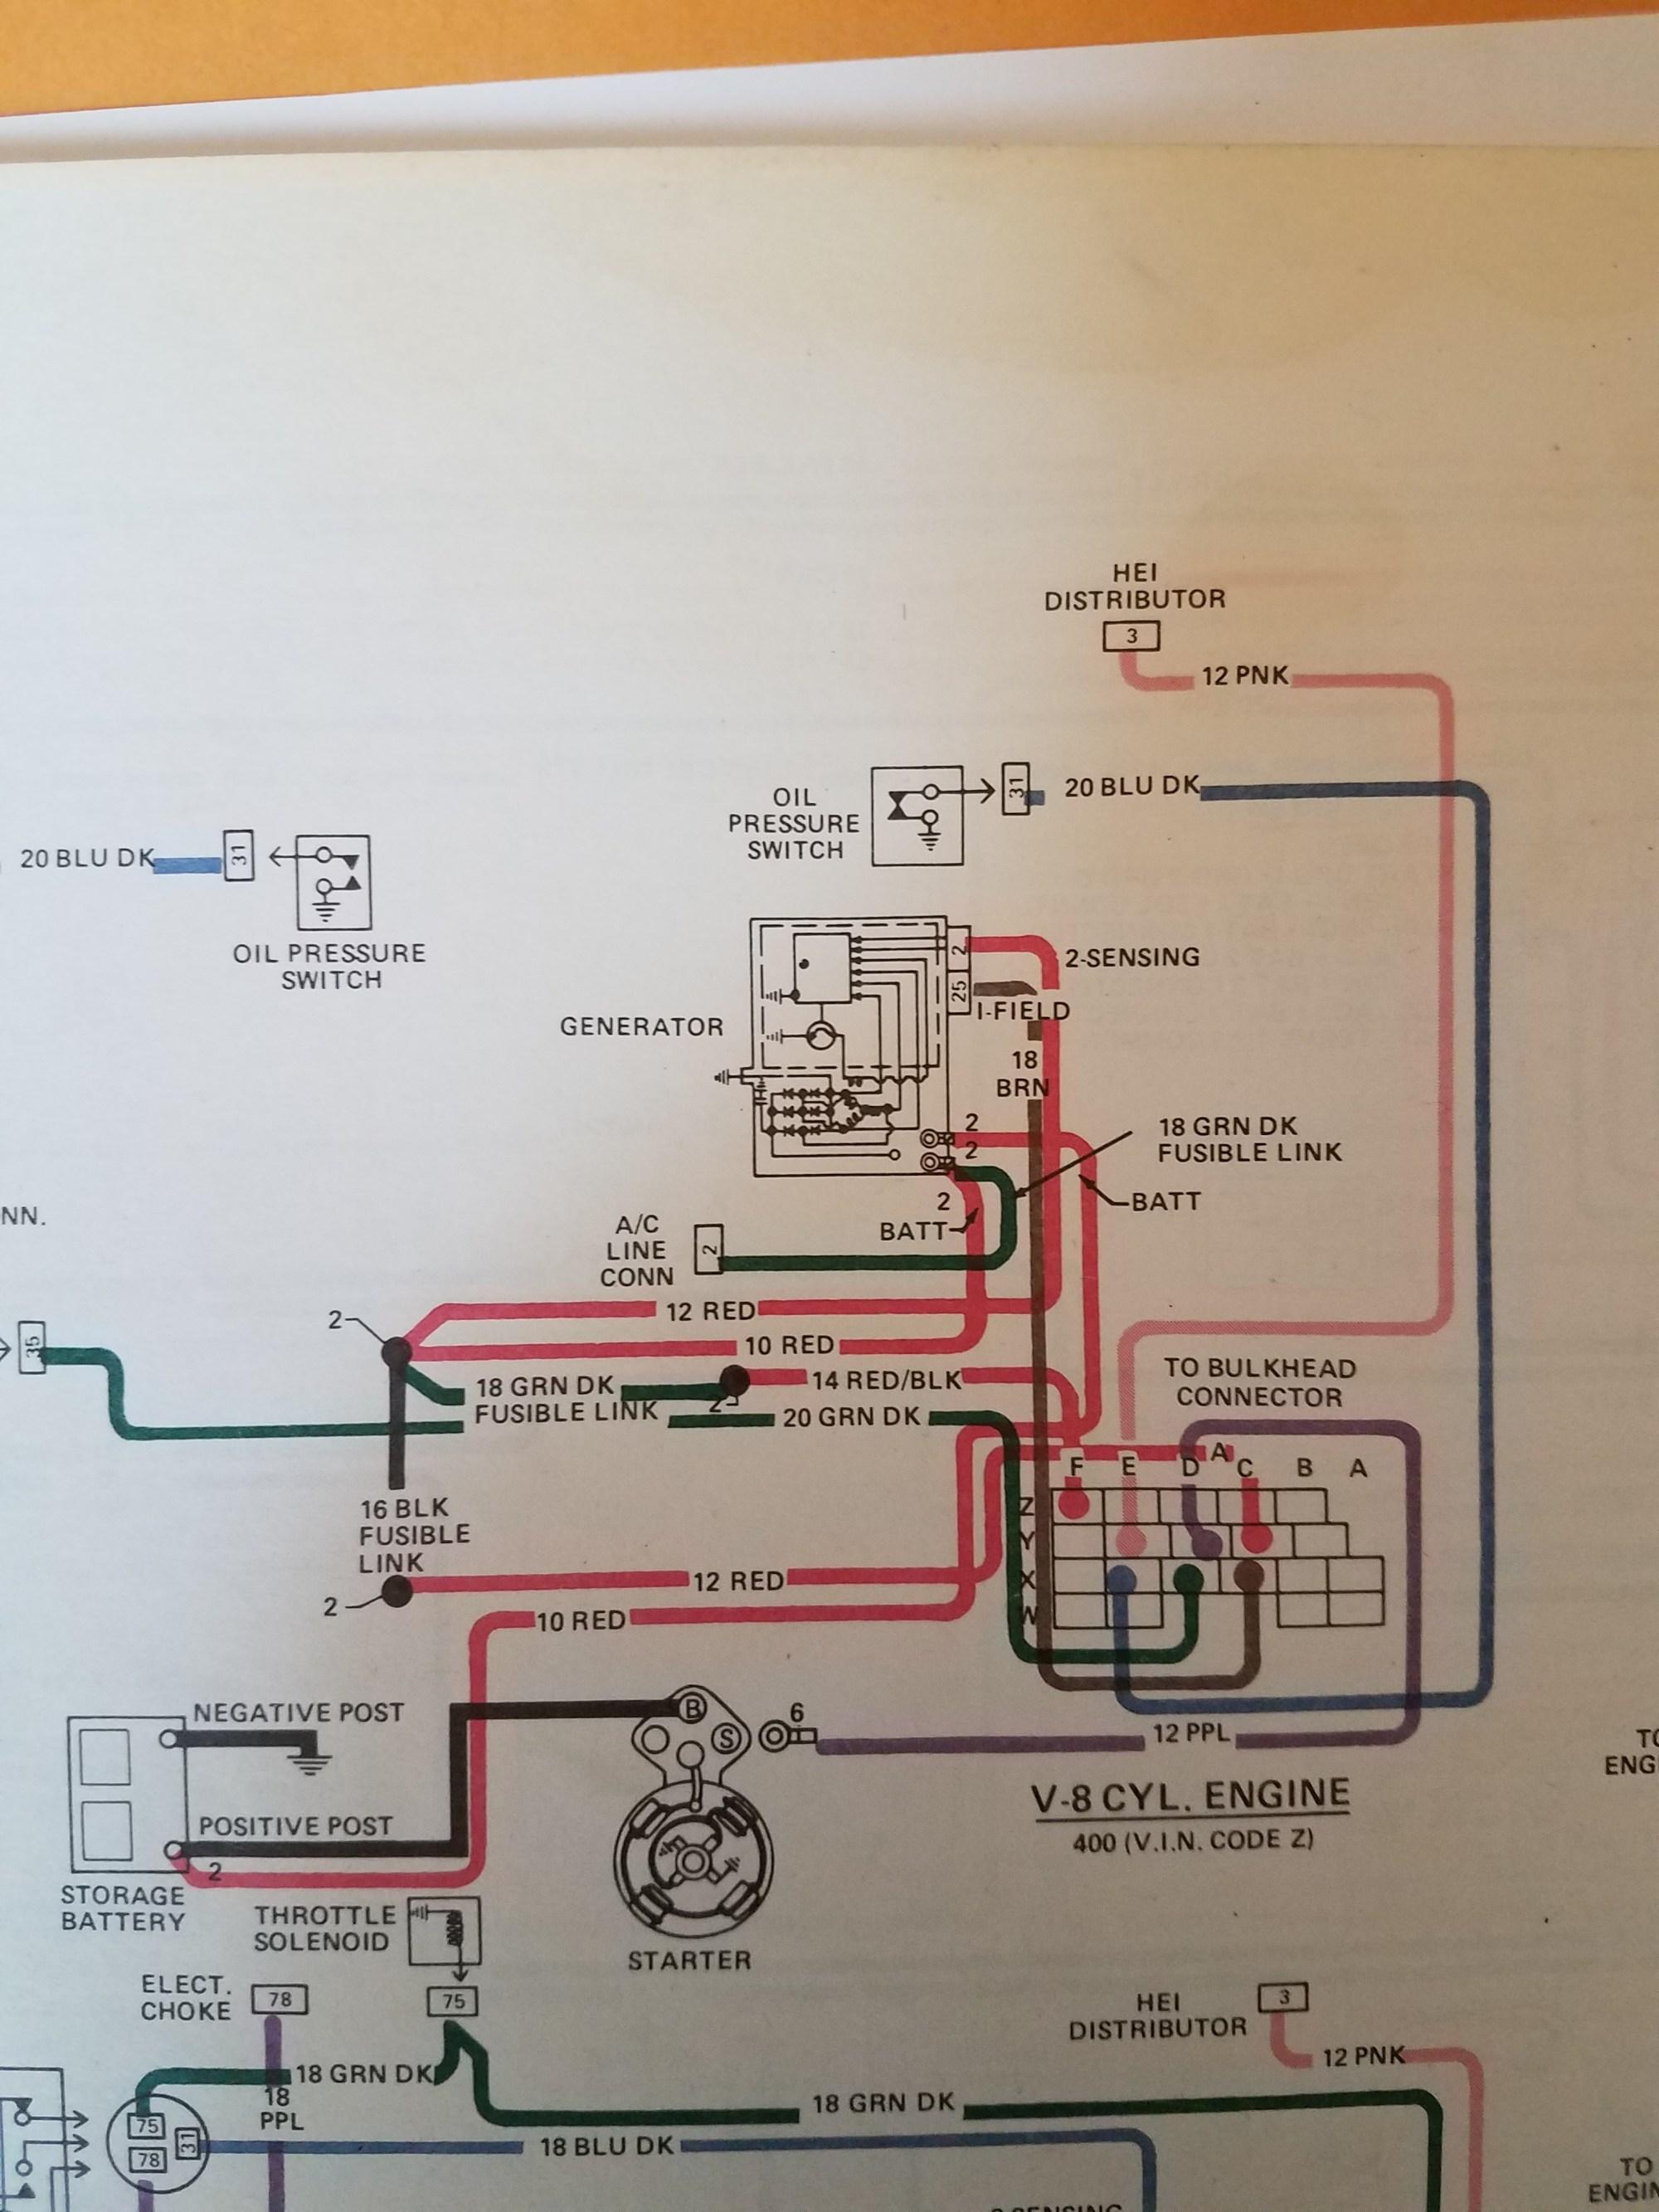 hight resolution of 86 trans am wiring diagram wiring library rh 48 yoobi de 2001 trans am wiring diagram 1988 trans am wiring diagram